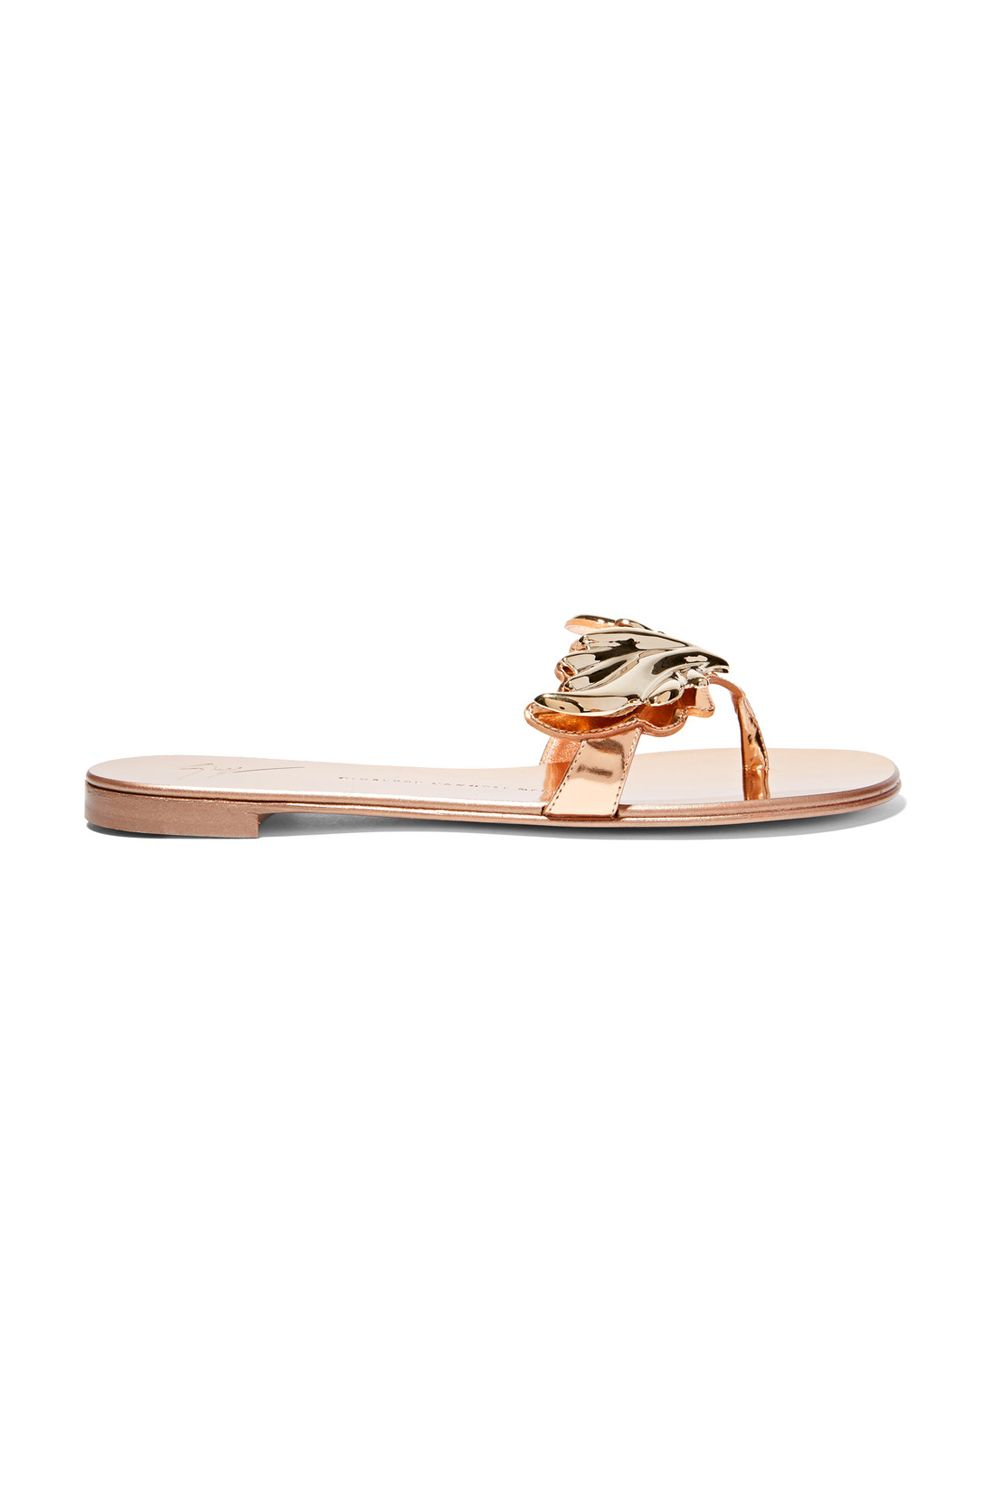 "<p><span class=""redactor-invisible-space"" data-verified=""redactor"" data-redactor-tag=""span"" data-redactor-class=""redactor-invisible-space"">You wanted ""non-basic."" You got non-basic with these laurel-gilded sandals, fit for a triumphal march.&nbsp&#x3B;</span></p><p><strong data-redactor-tag=""strong"">BUY IT:&nbsp&#x3B;</strong><span class=""redactor-invisible-space"" data-verified=""redactor"" data-redactor-tag=""span"" data-redactor-class=""redactor-invisible-space""></span>Giuseppe Zanotti, $700&#x3B; <a href=""https://www.net-a-porter.com/us/en/product/665738/giuseppe_zanotti/embellished-metallic-patent-leather-sandals"" target=""_blank"" data-tracking-id=""recirc-text-link"">net-a-porter.com</a>.</p>"